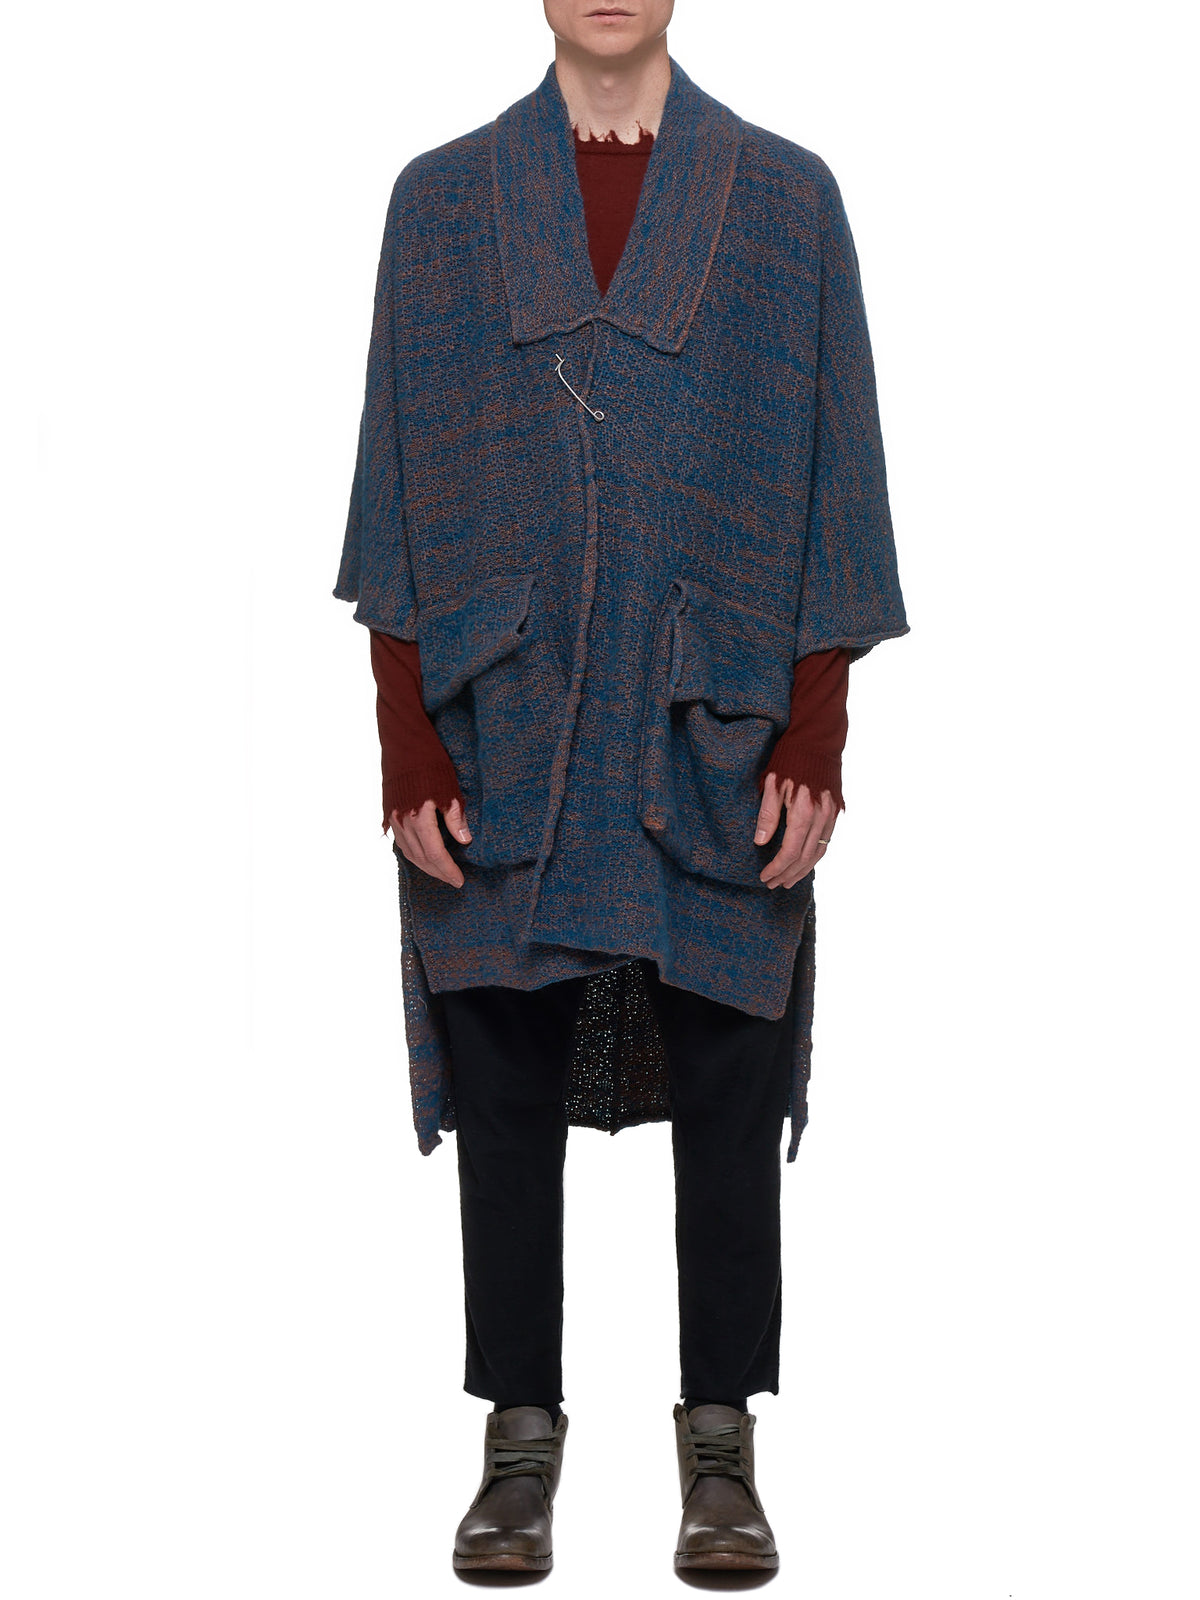 Fabriano Oversized Knitted Cardigan (FABRIANO-PETROL-RUST)